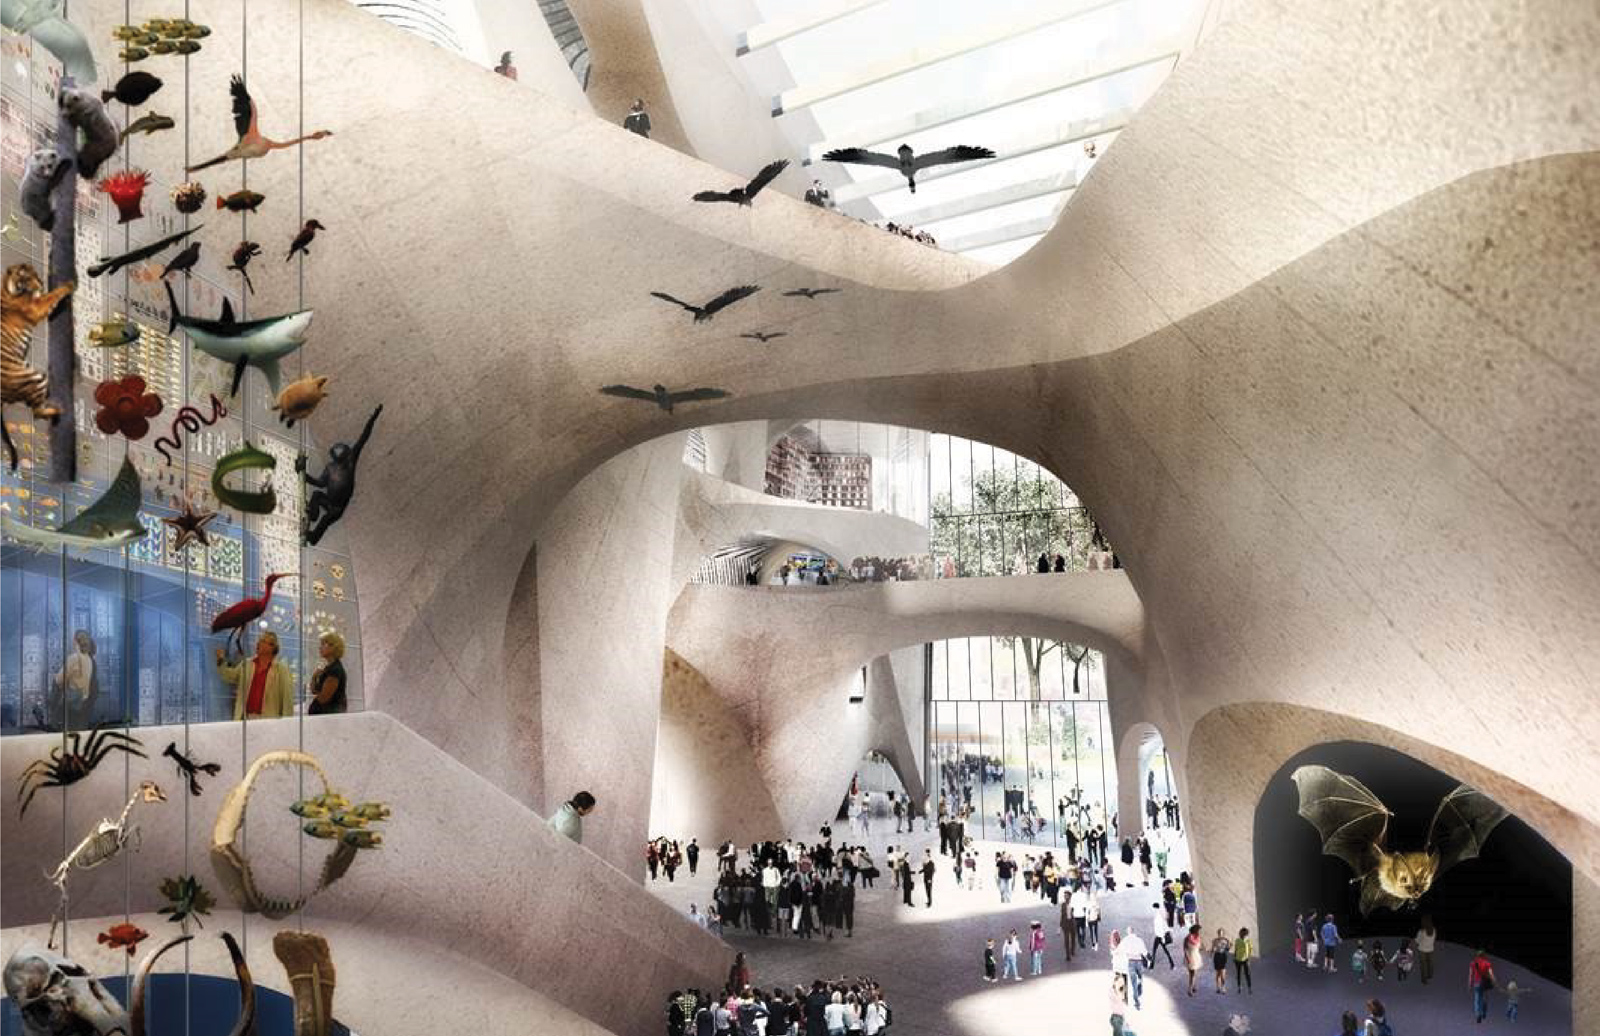 Proposed Interior of the Gilder Center Central Exhibition Hall. Courtesy of the American Museum of Natural History